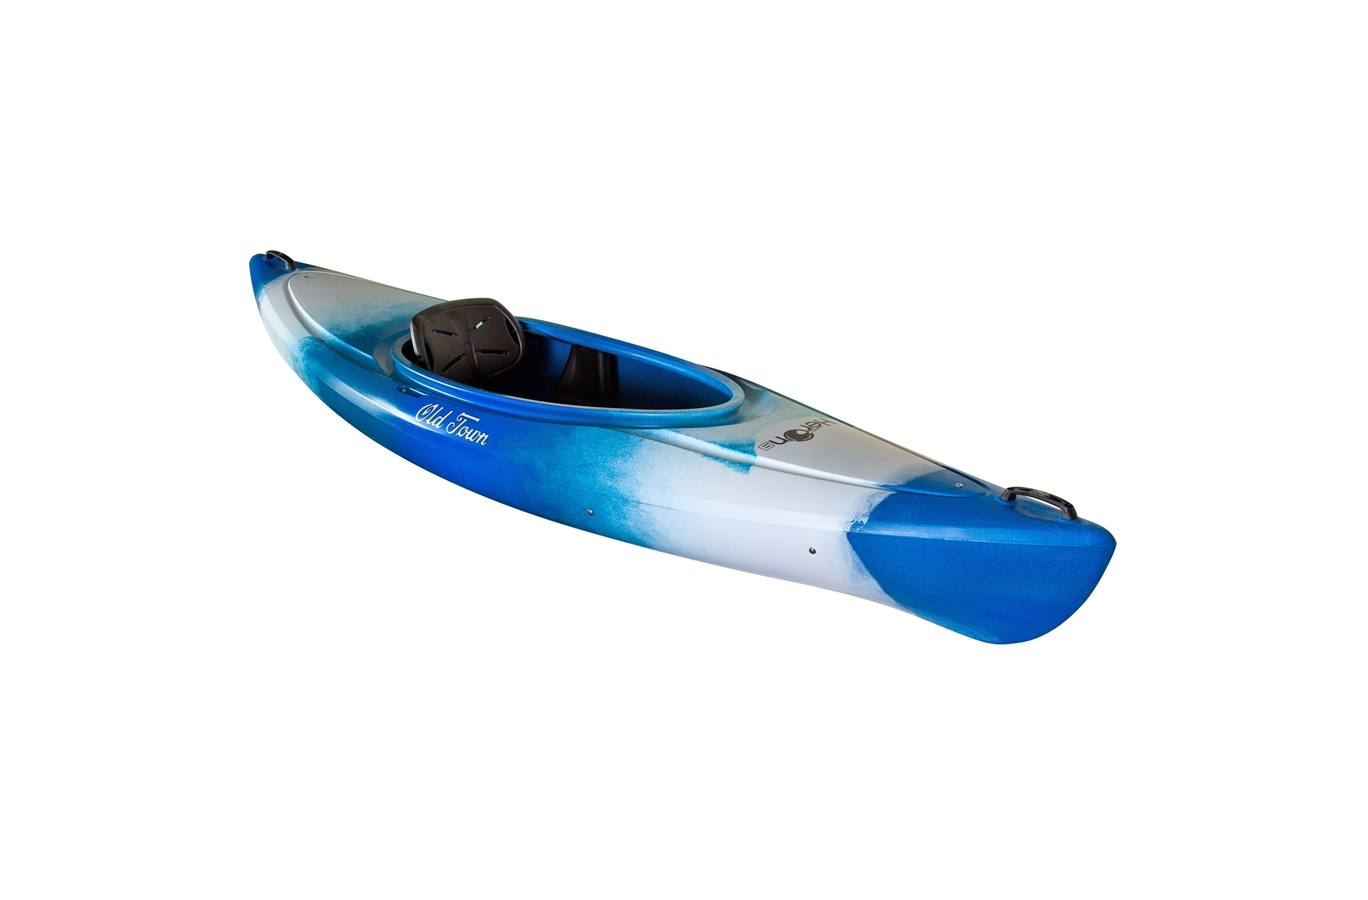 2019 Old Town Canoes and Kayaks Heron 9